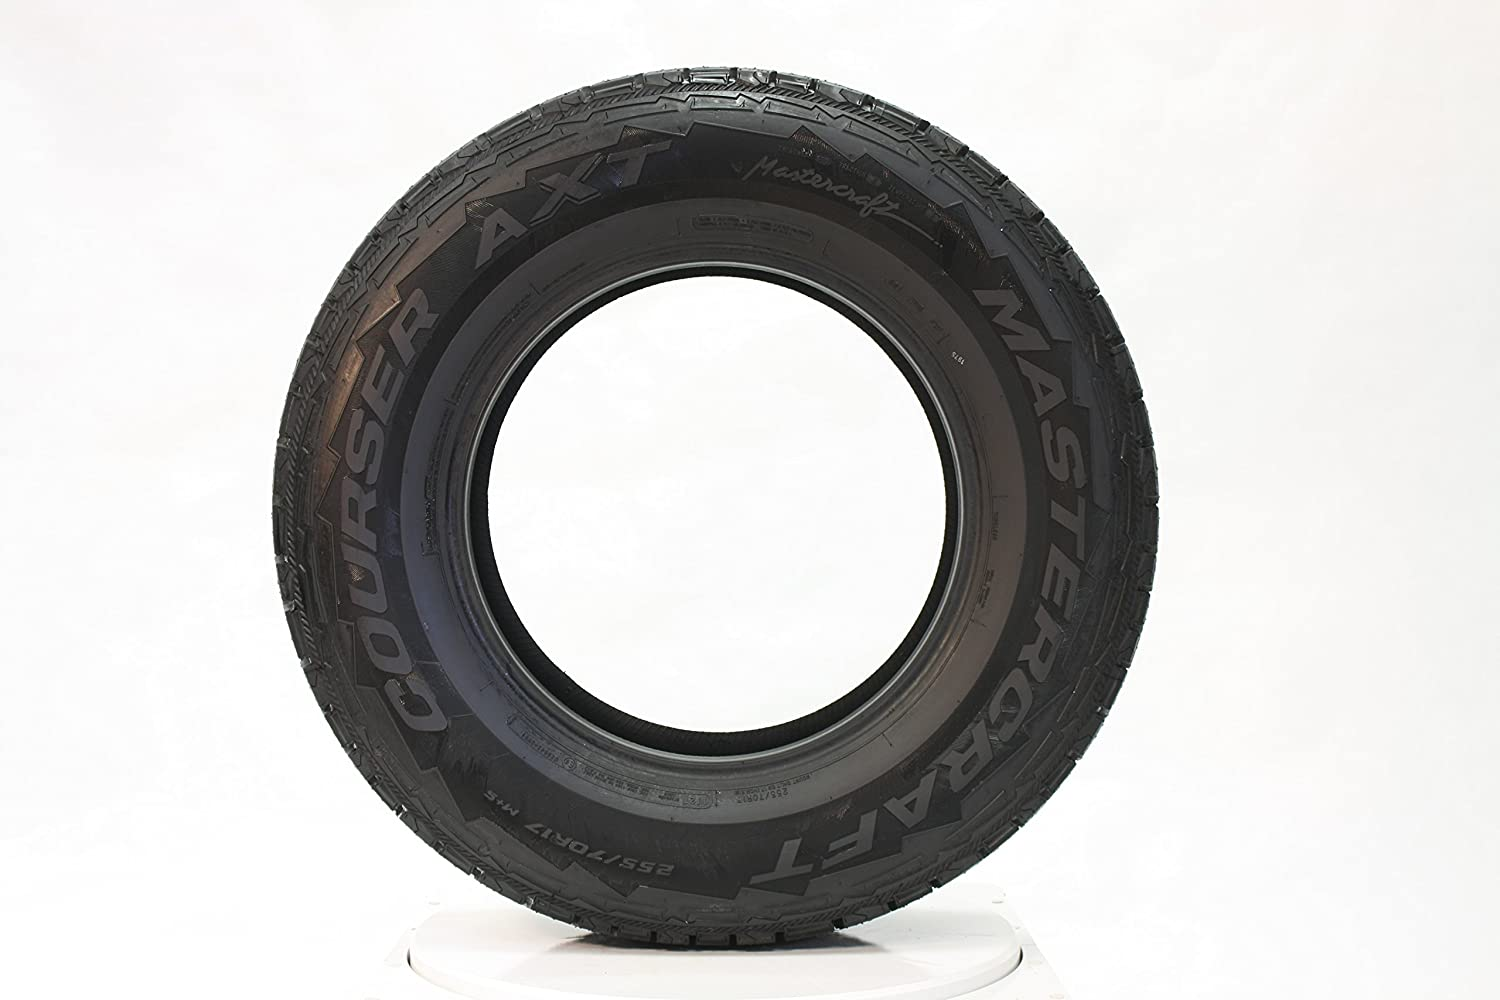 285//75R16 126R Mastercraft Courser AXT Radial Tire